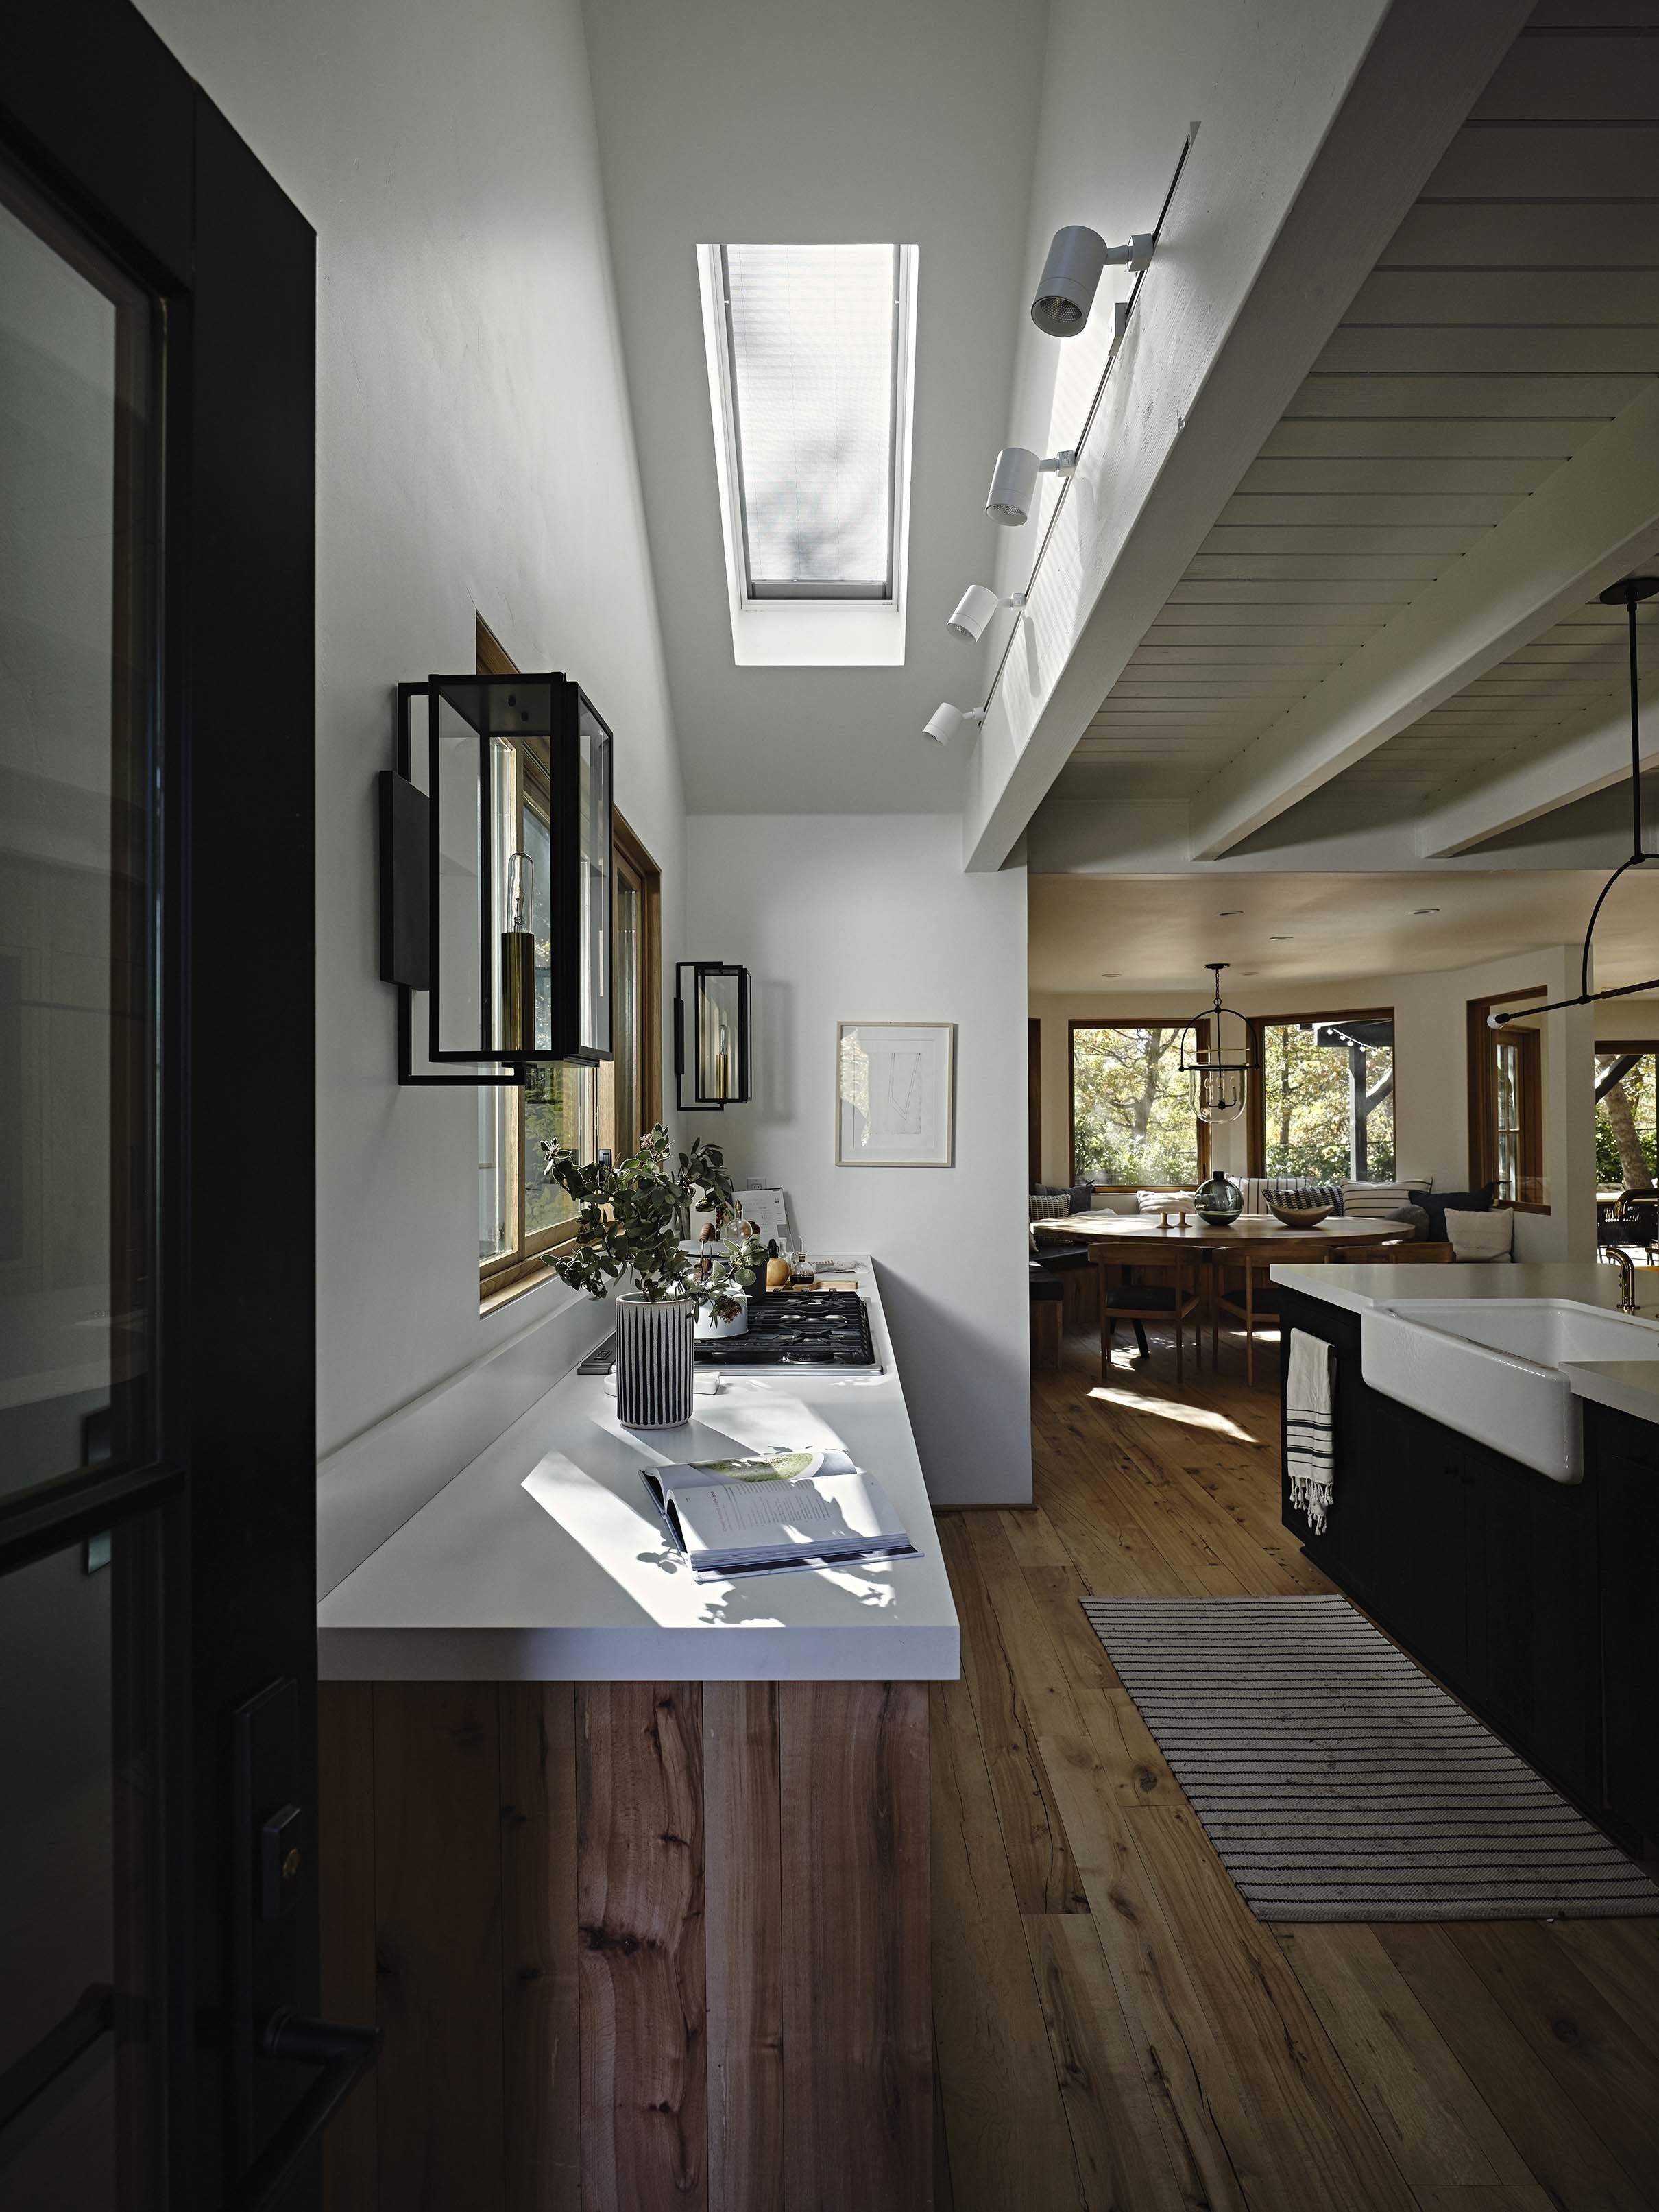 Kitchen with skylight light filtering shade